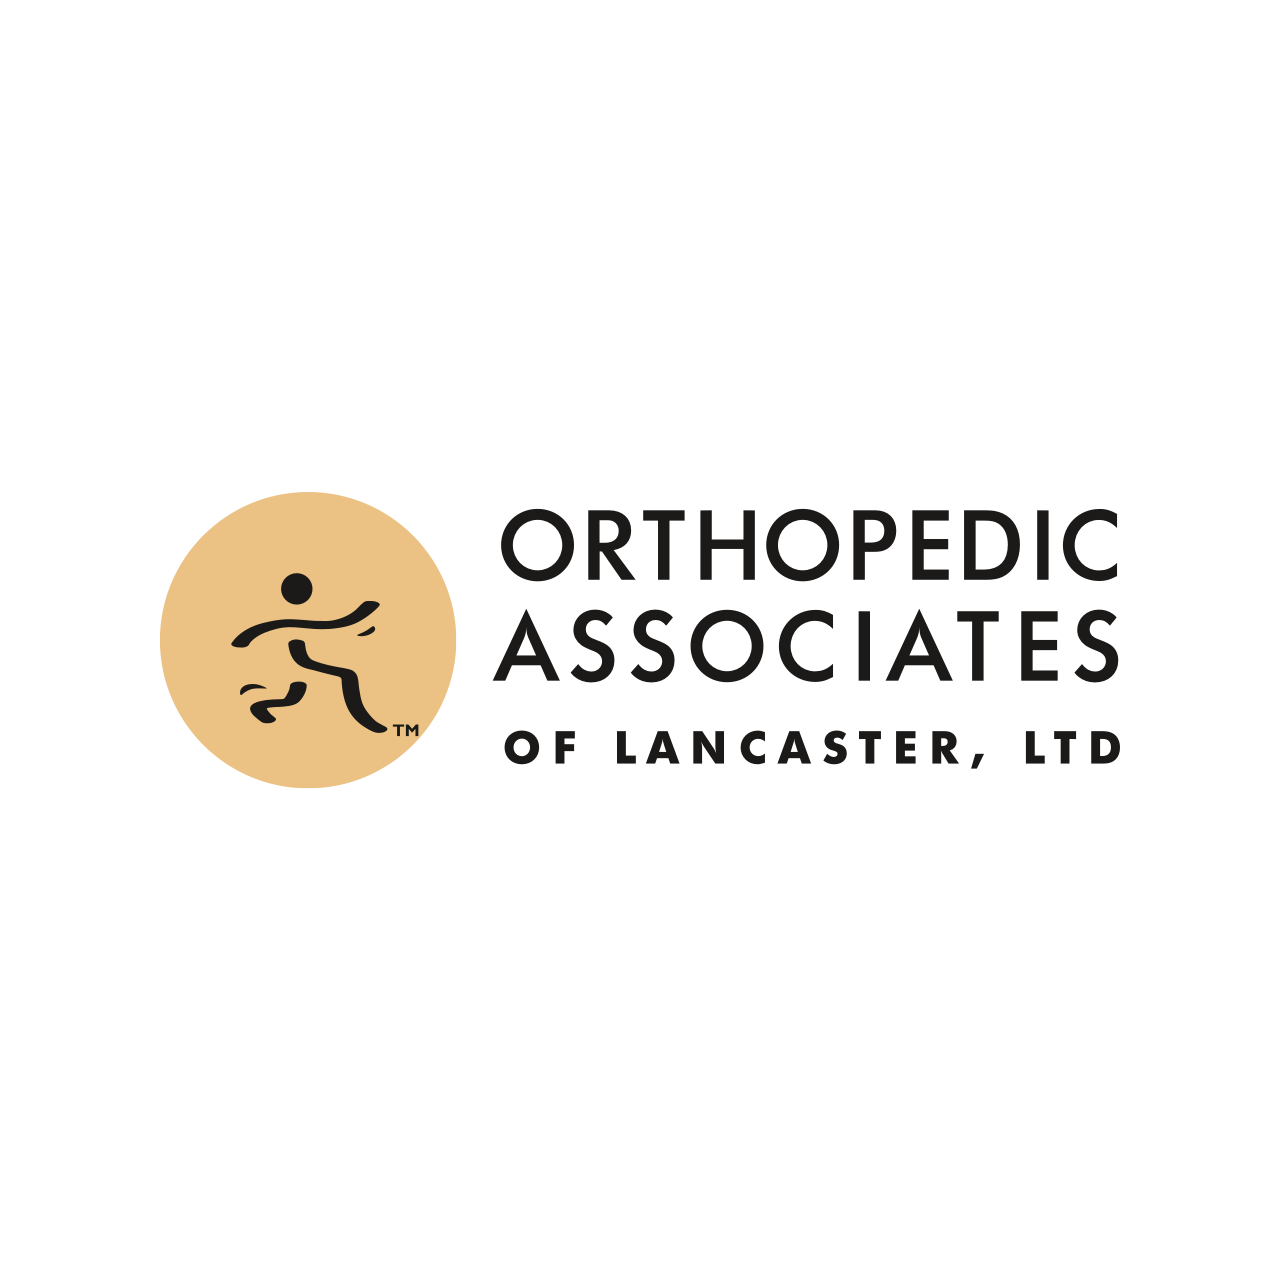 Orthopaedic Associates of Lancaster, LTD